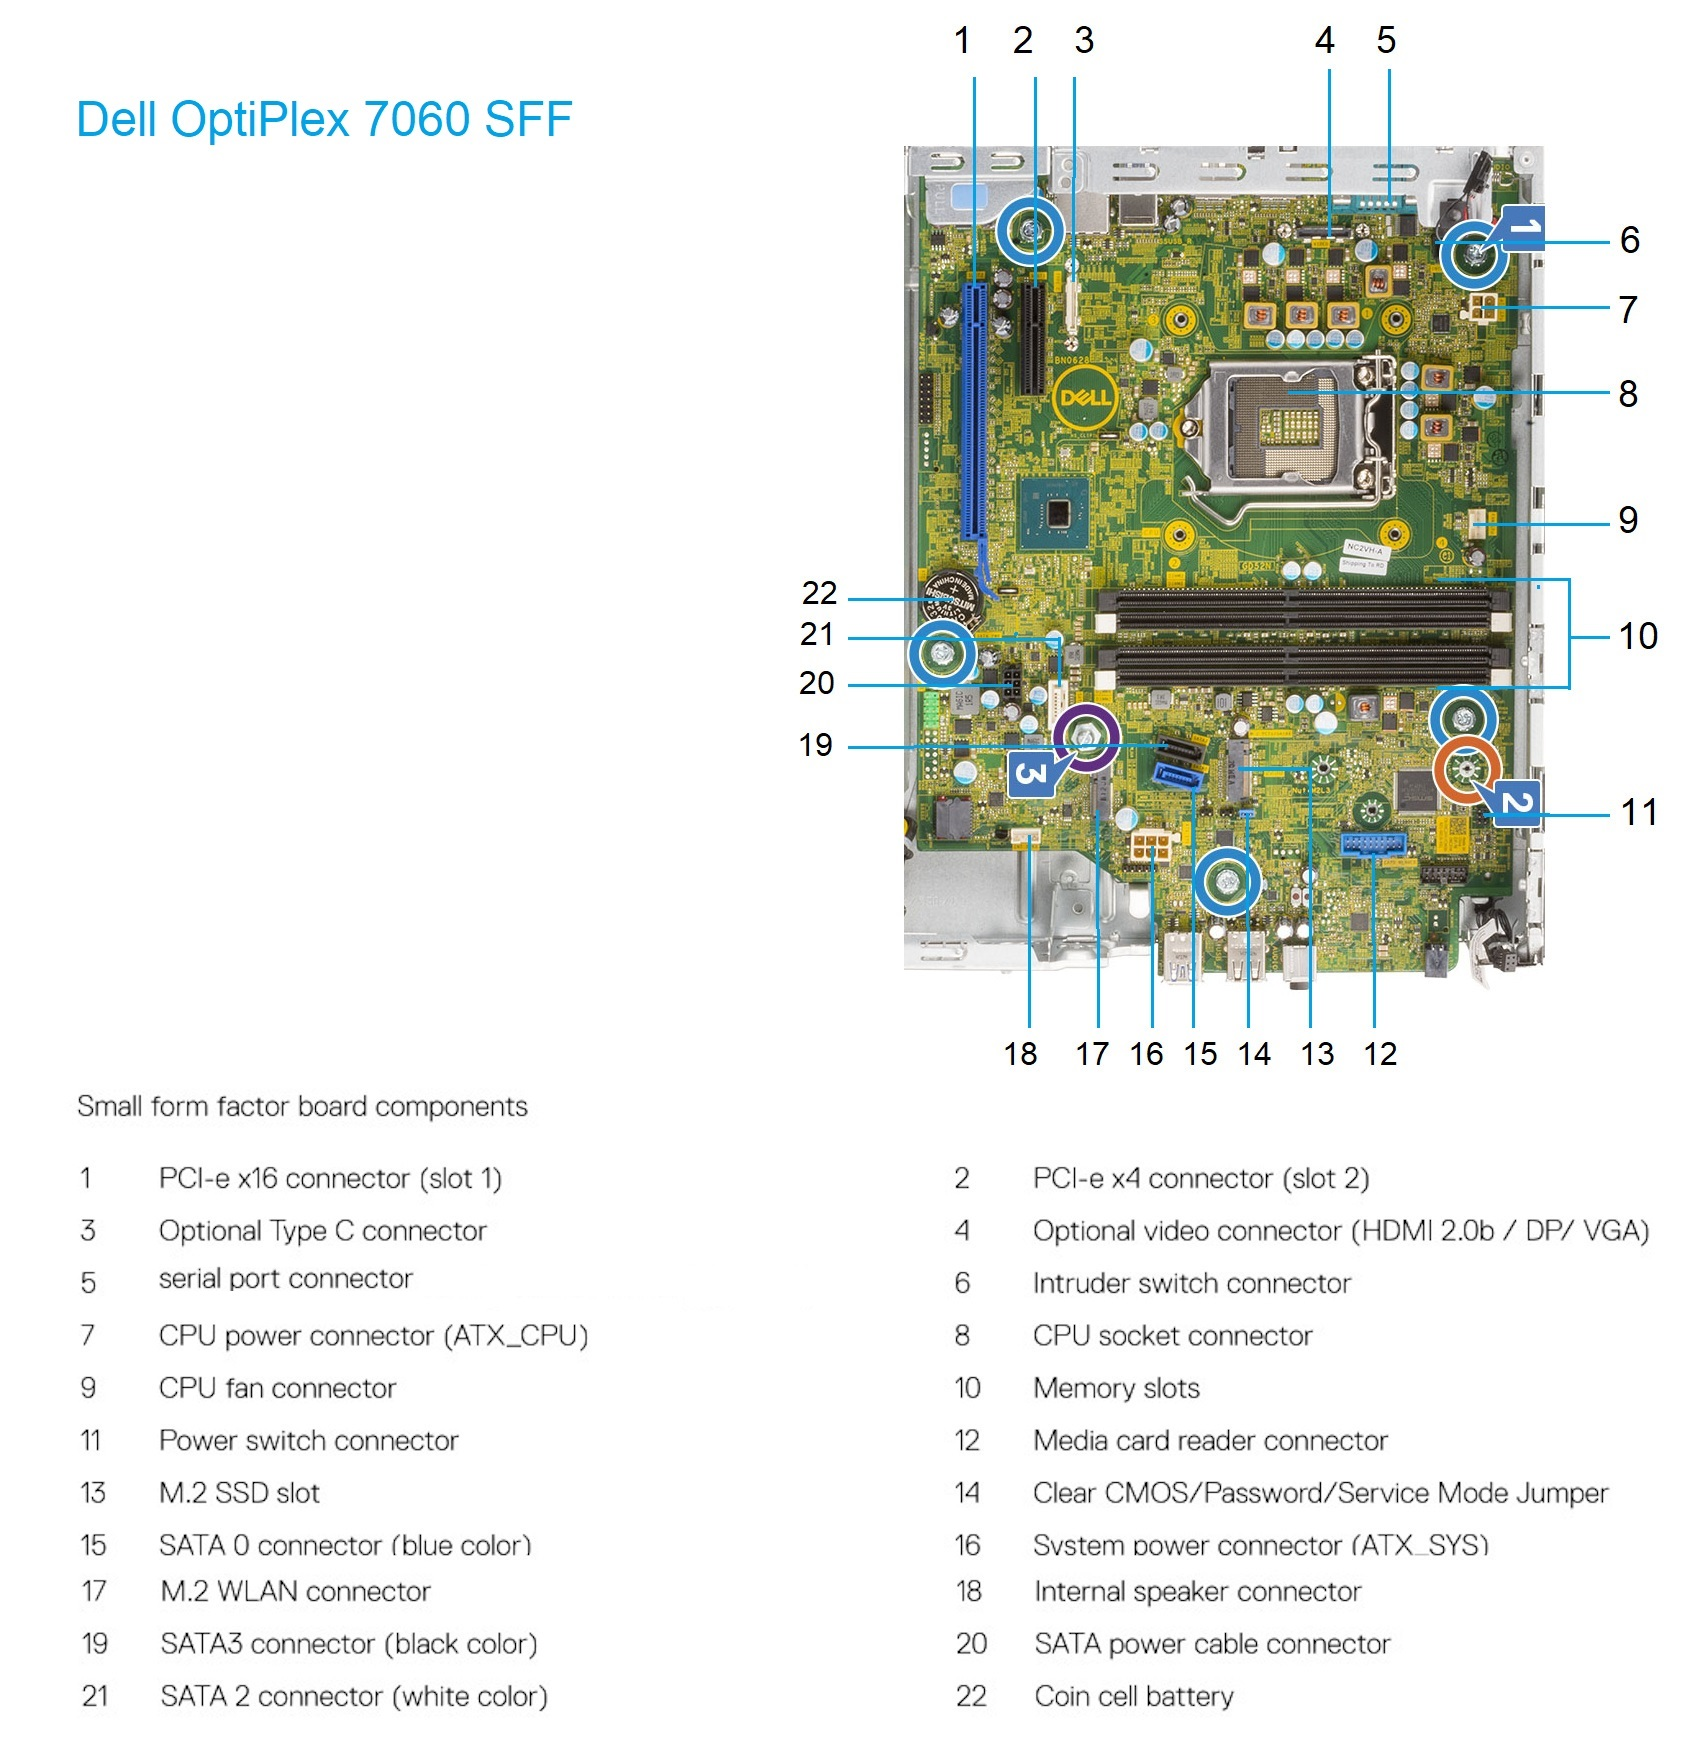 Dell_OptiPlex_7060_SFF_motherboard.jpg motherboard layout